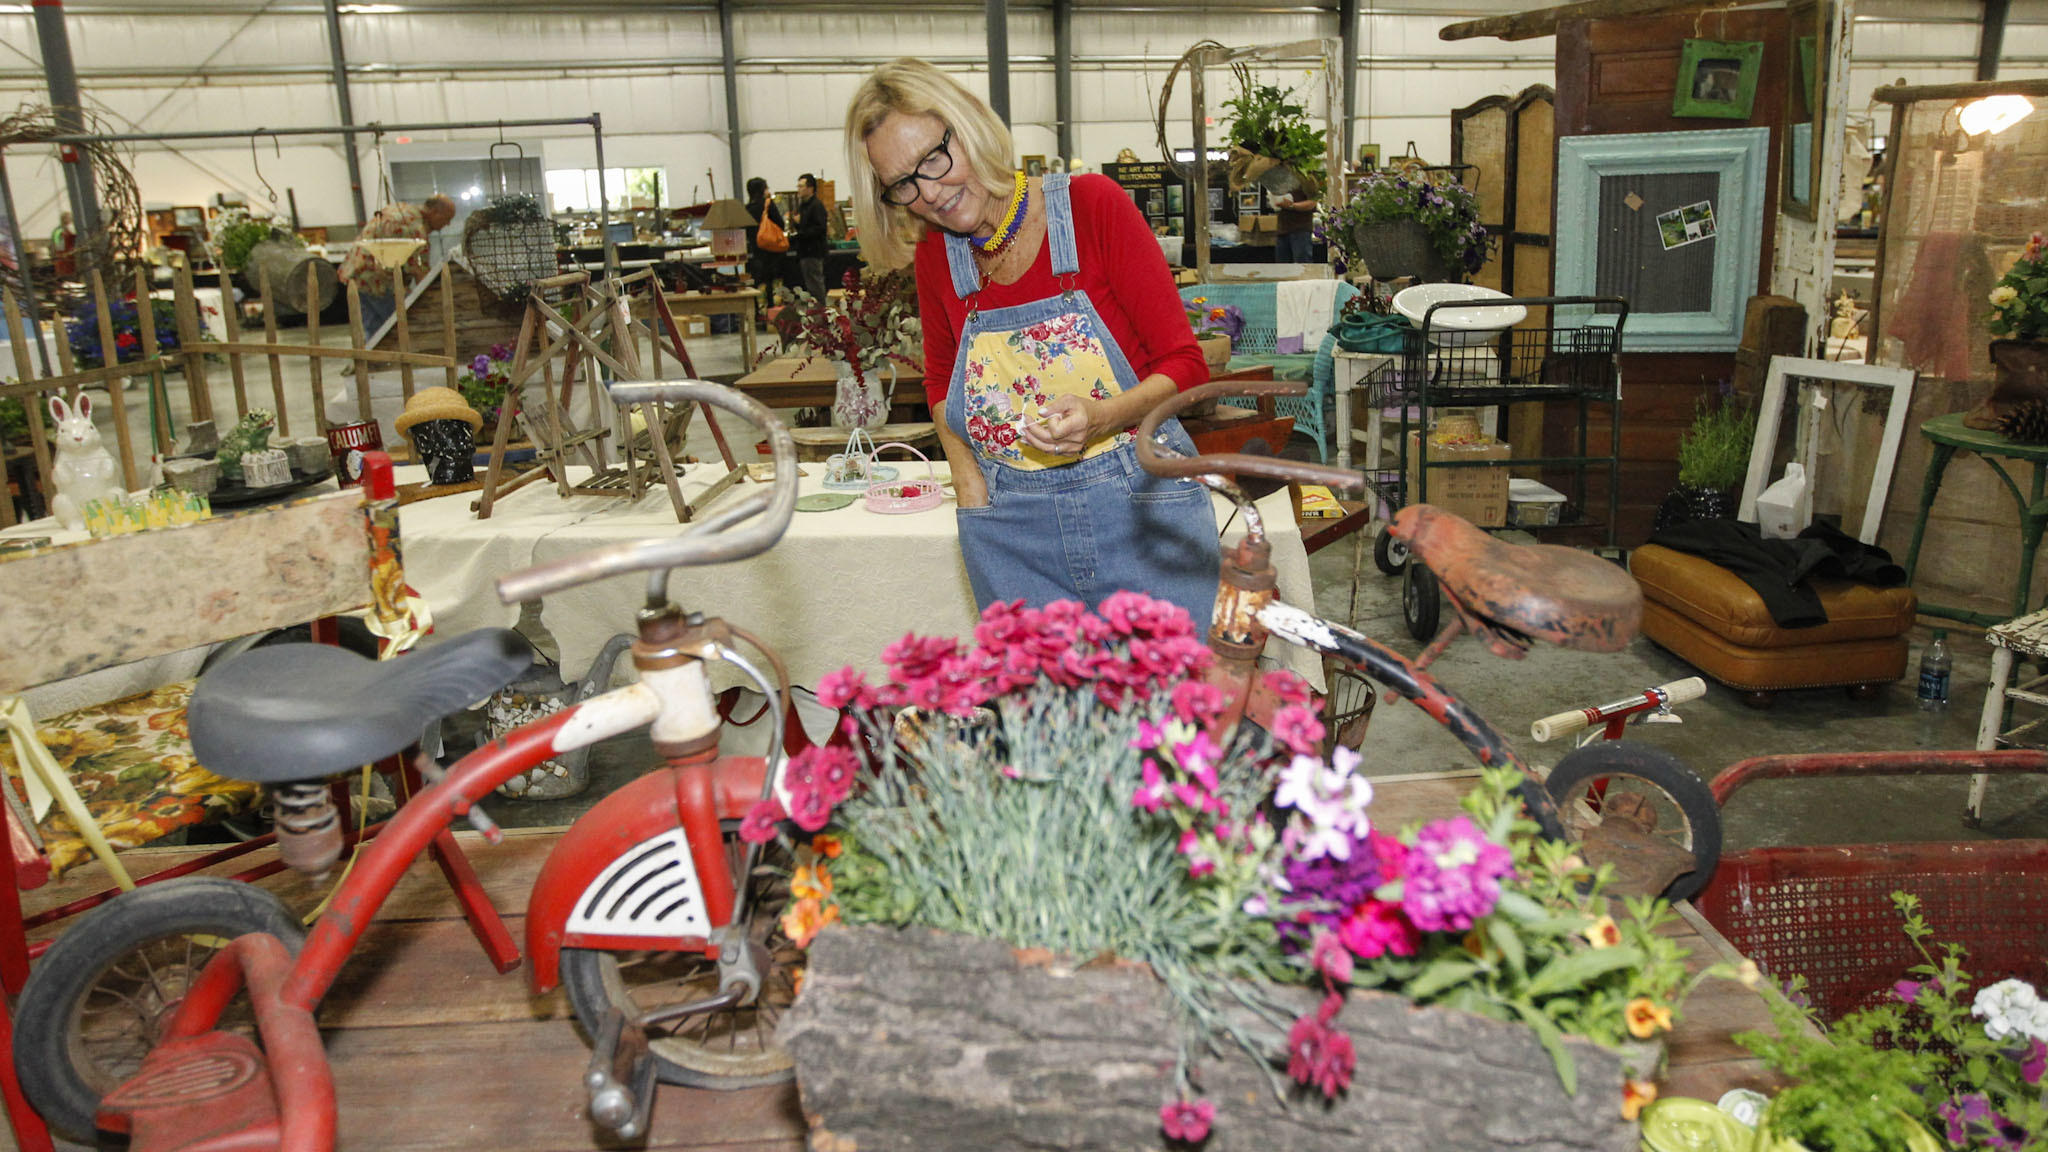 The Best Flea Markets In And Around Chicago For Great Deals